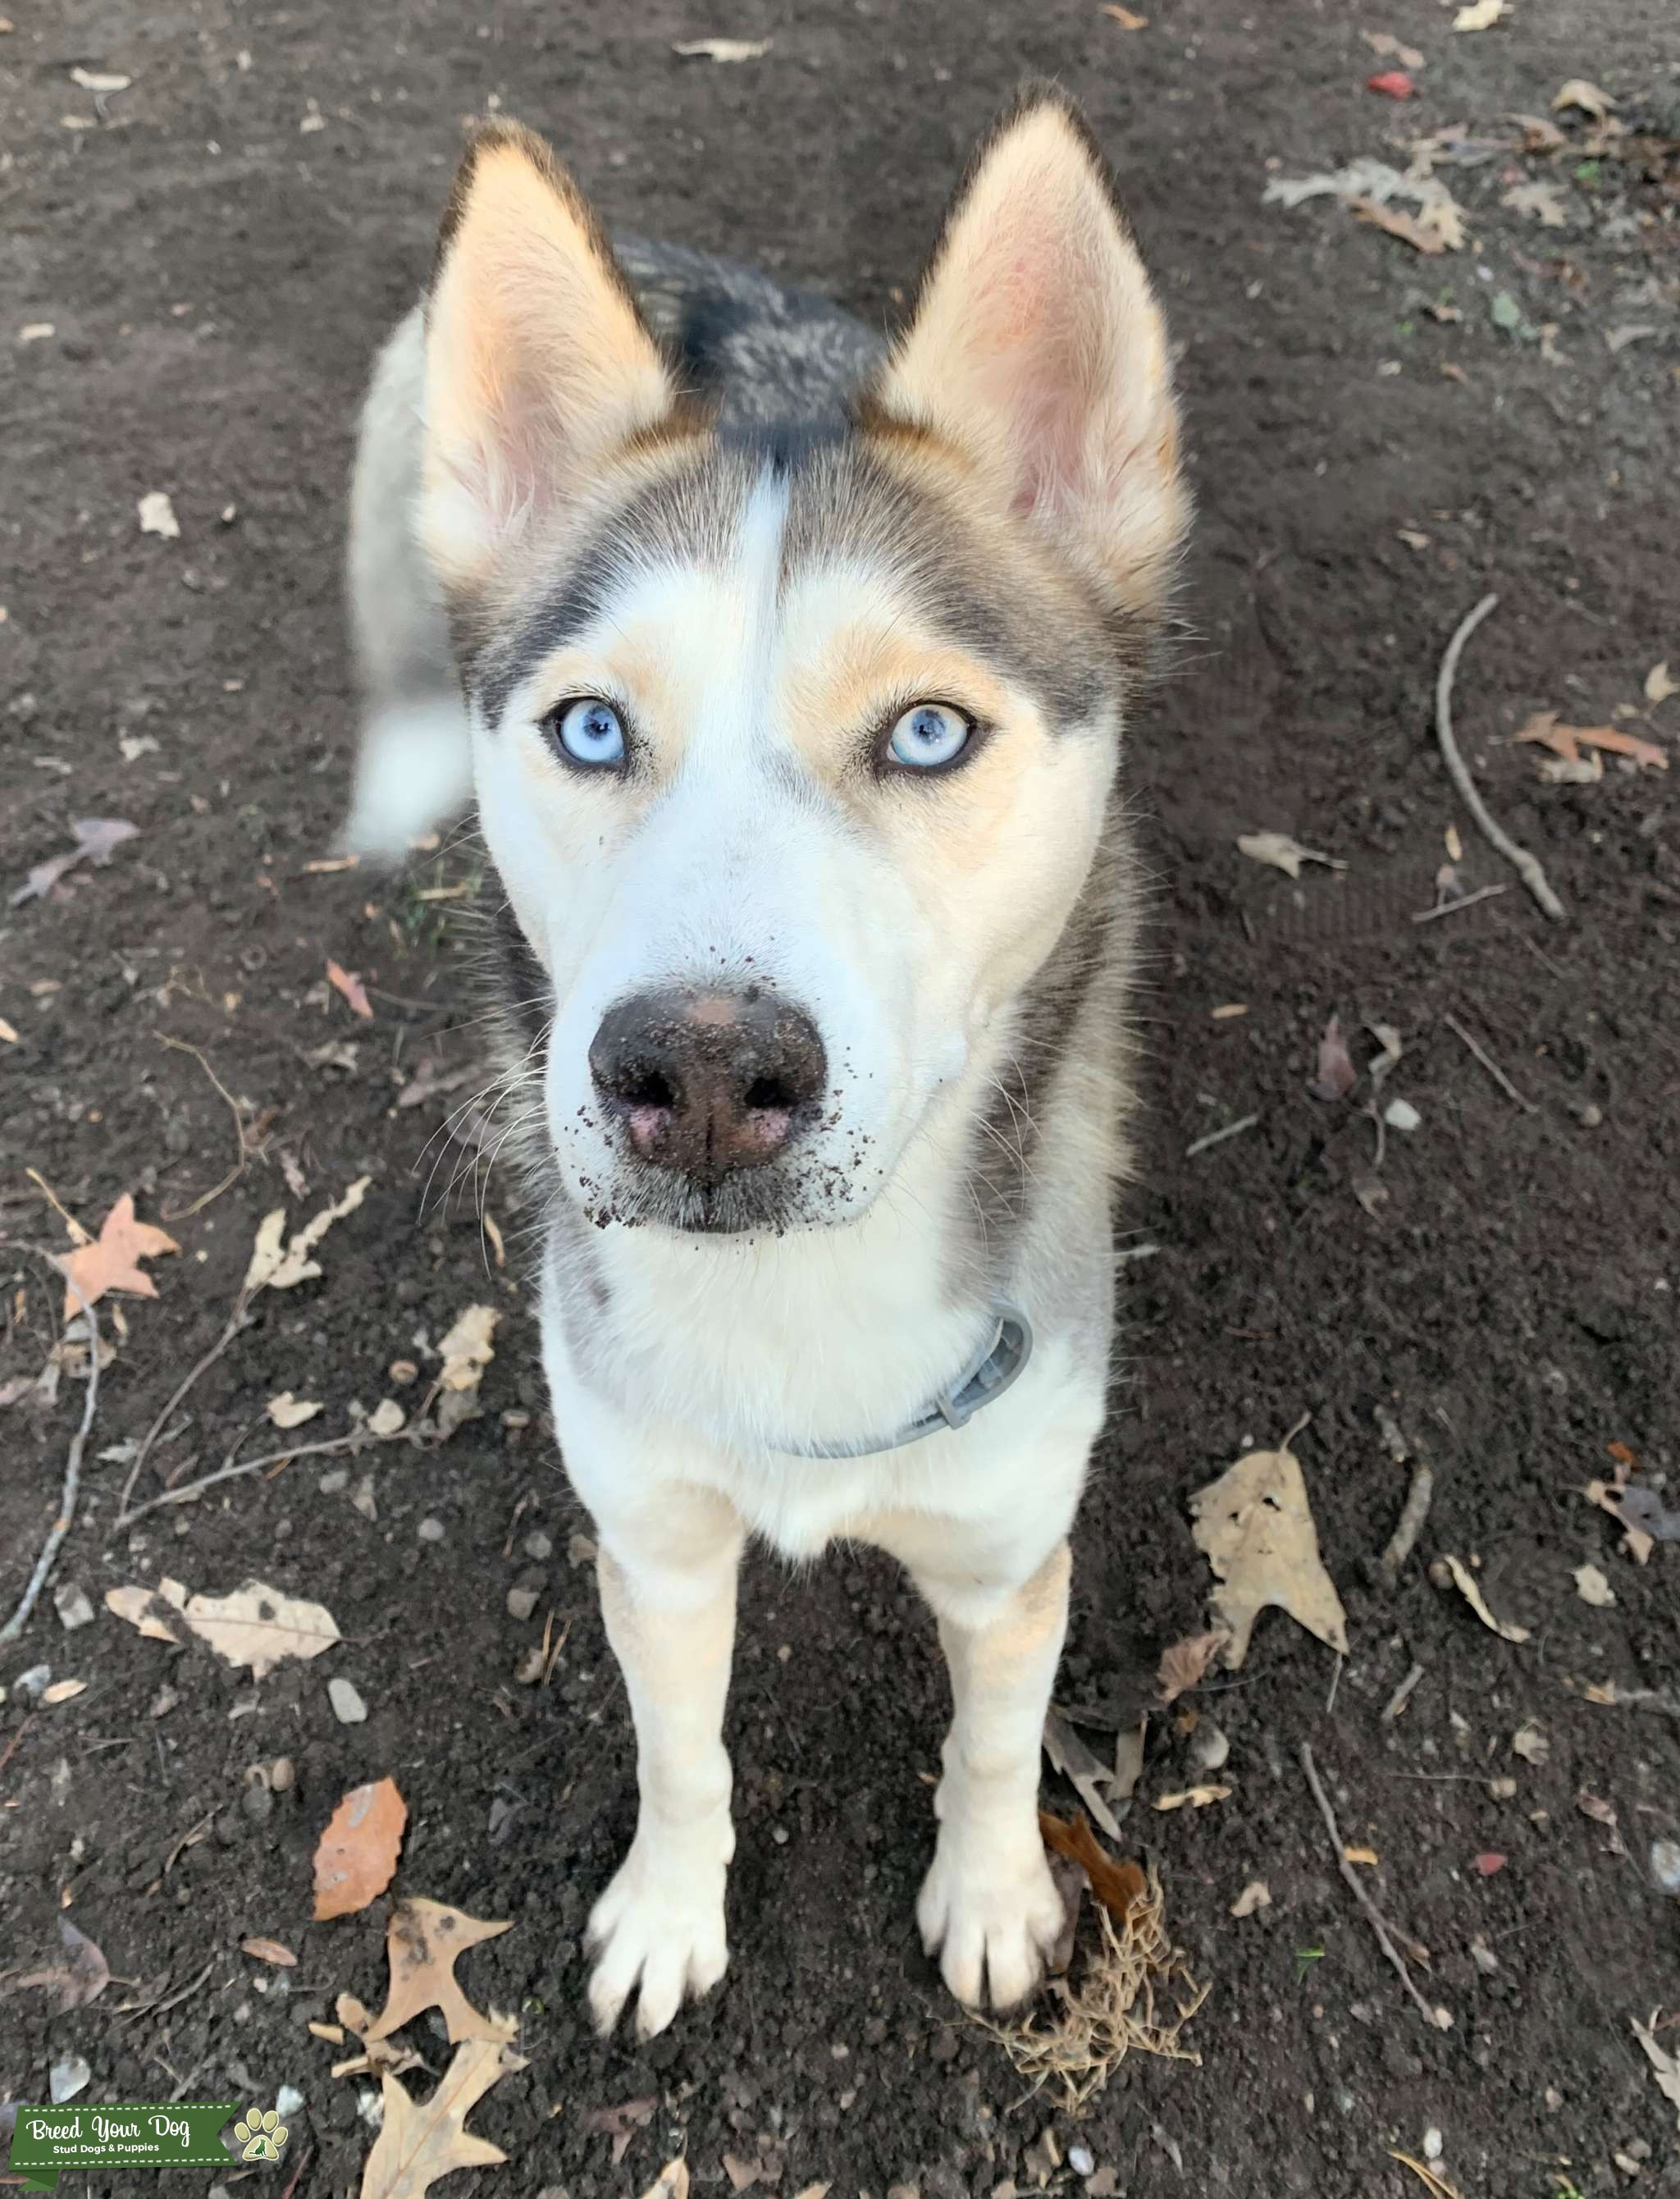 Malamute/Husky mix looking for lover  Listing Image Big